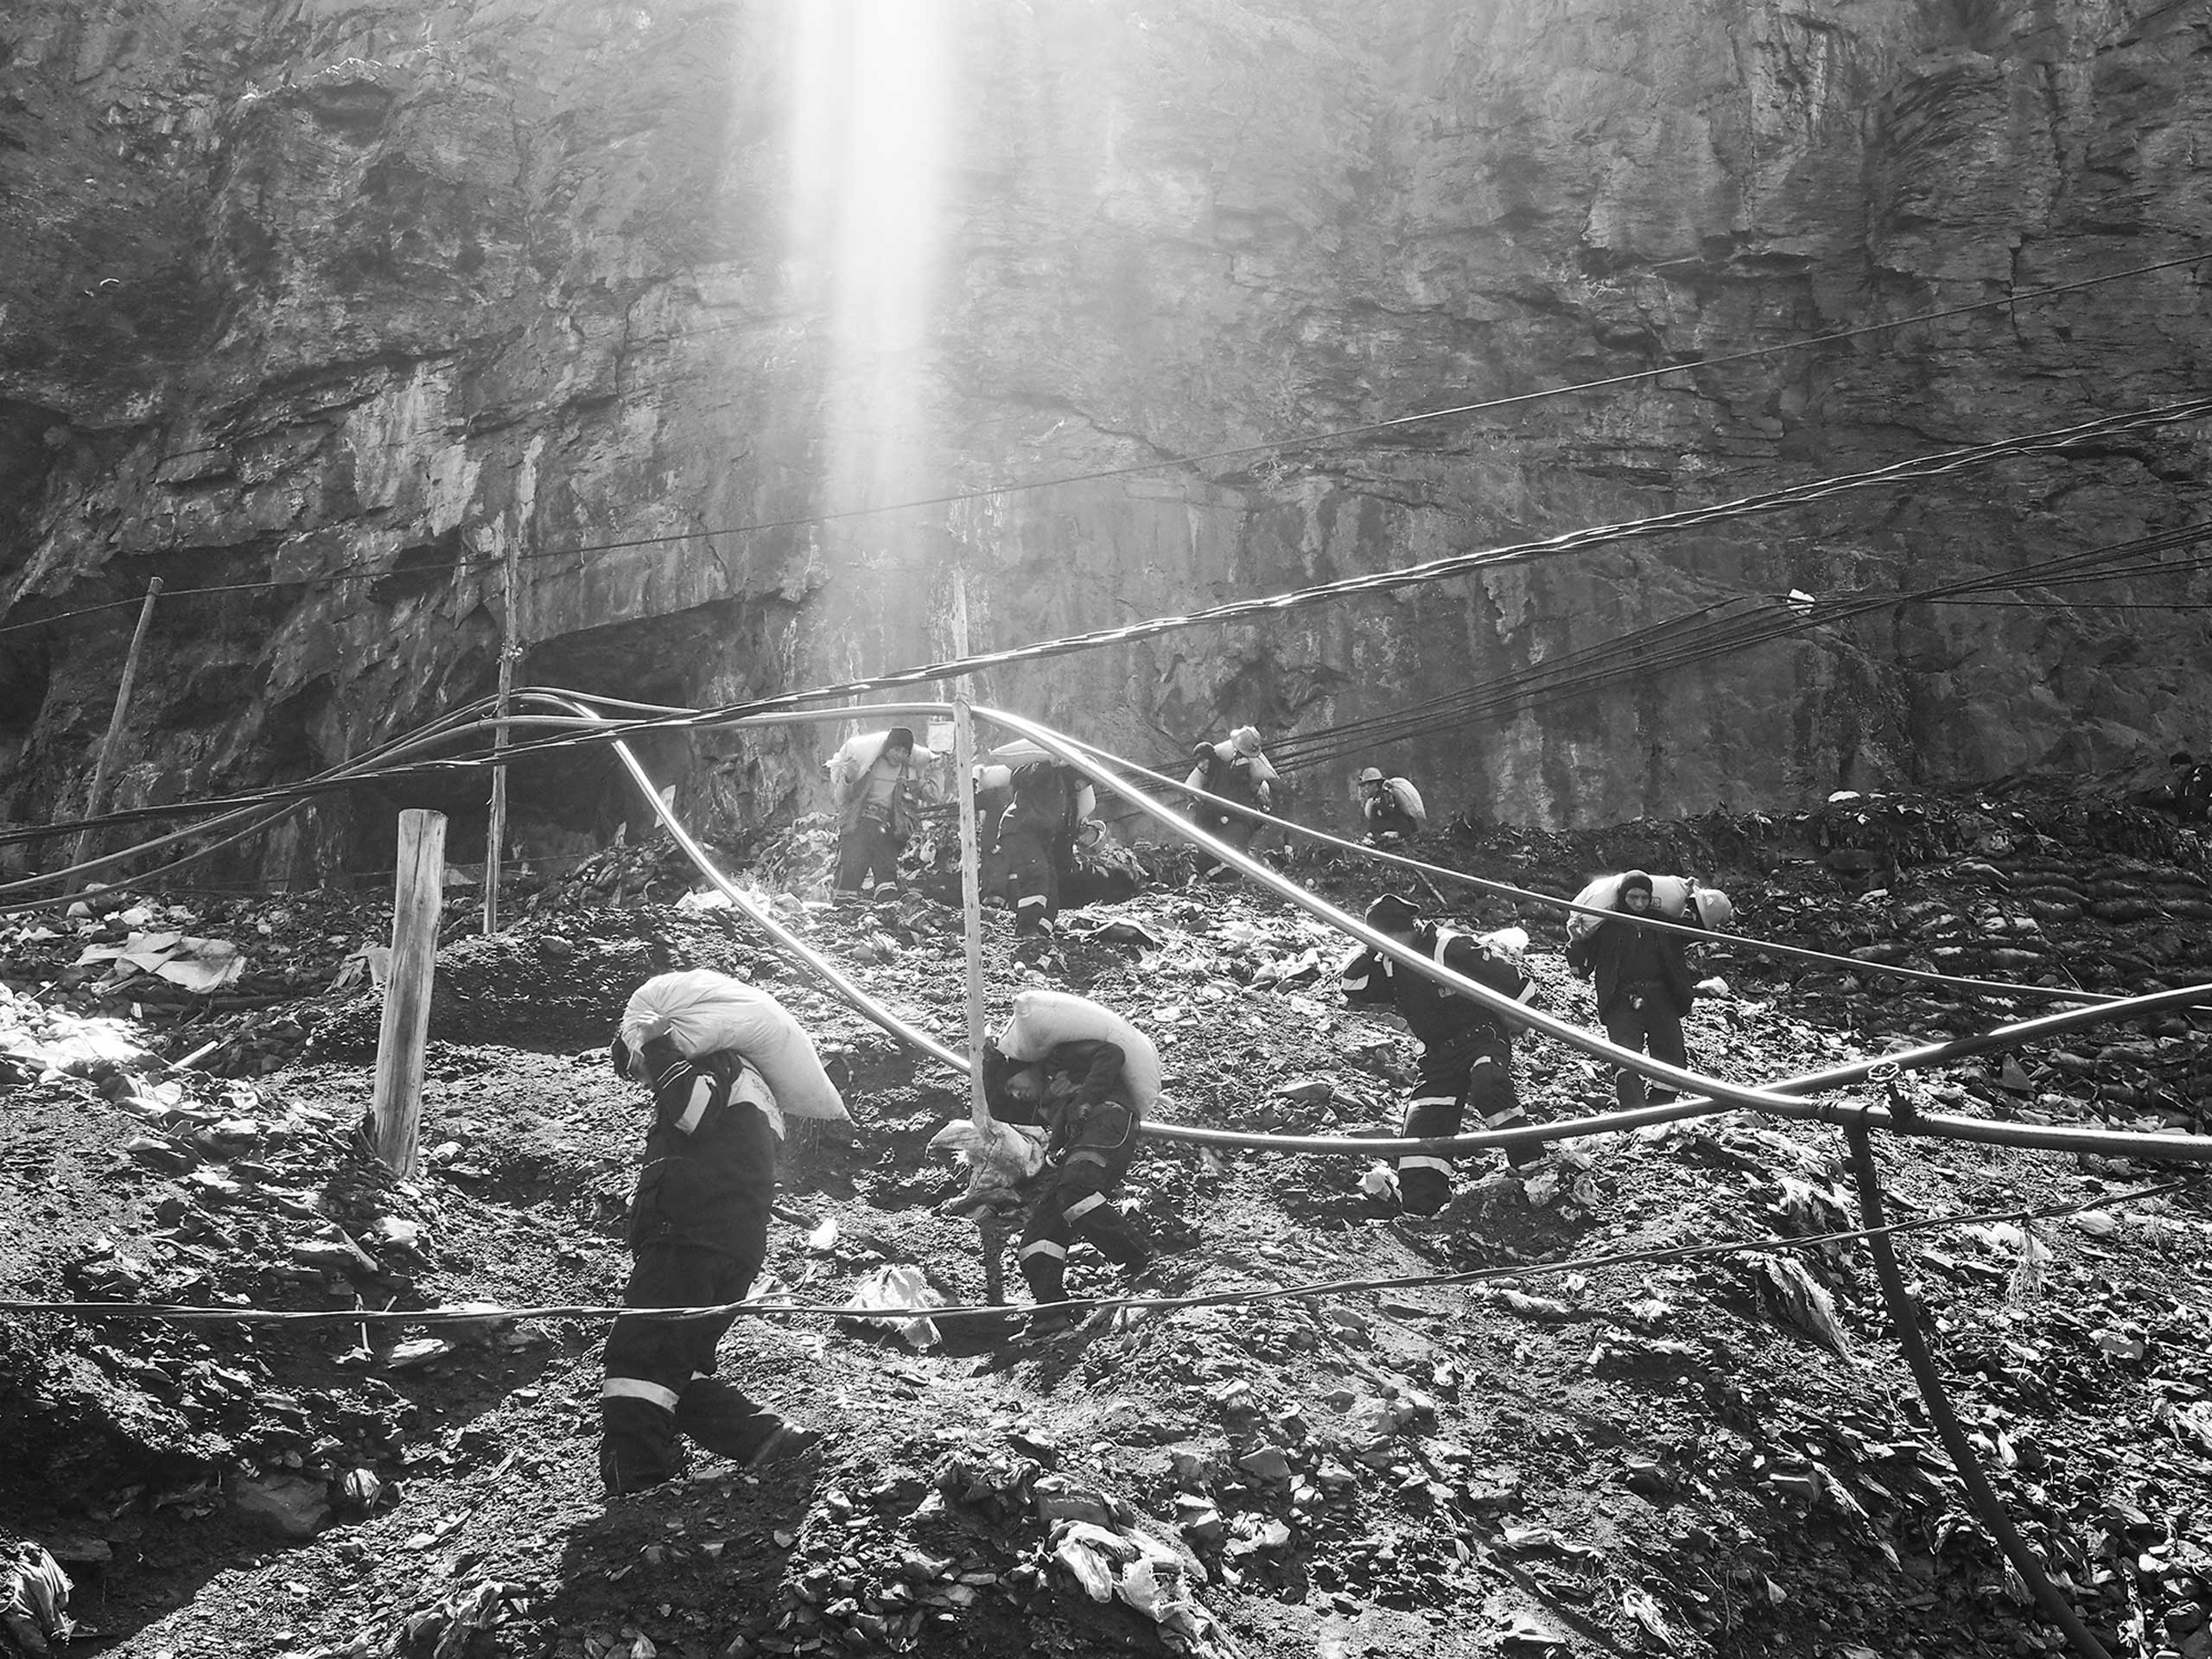 The New Yorker Photo Booth: Digging for Gold in the AndesMiners return home carrying bags filled with rocks, some of which may contain gold. The mines operate on an ancient labor system called cachorreo, which is usually described as thirty days of unpaid work followed by a single frantic day in which workers get to keep whatever gold they can haul out for themselves.